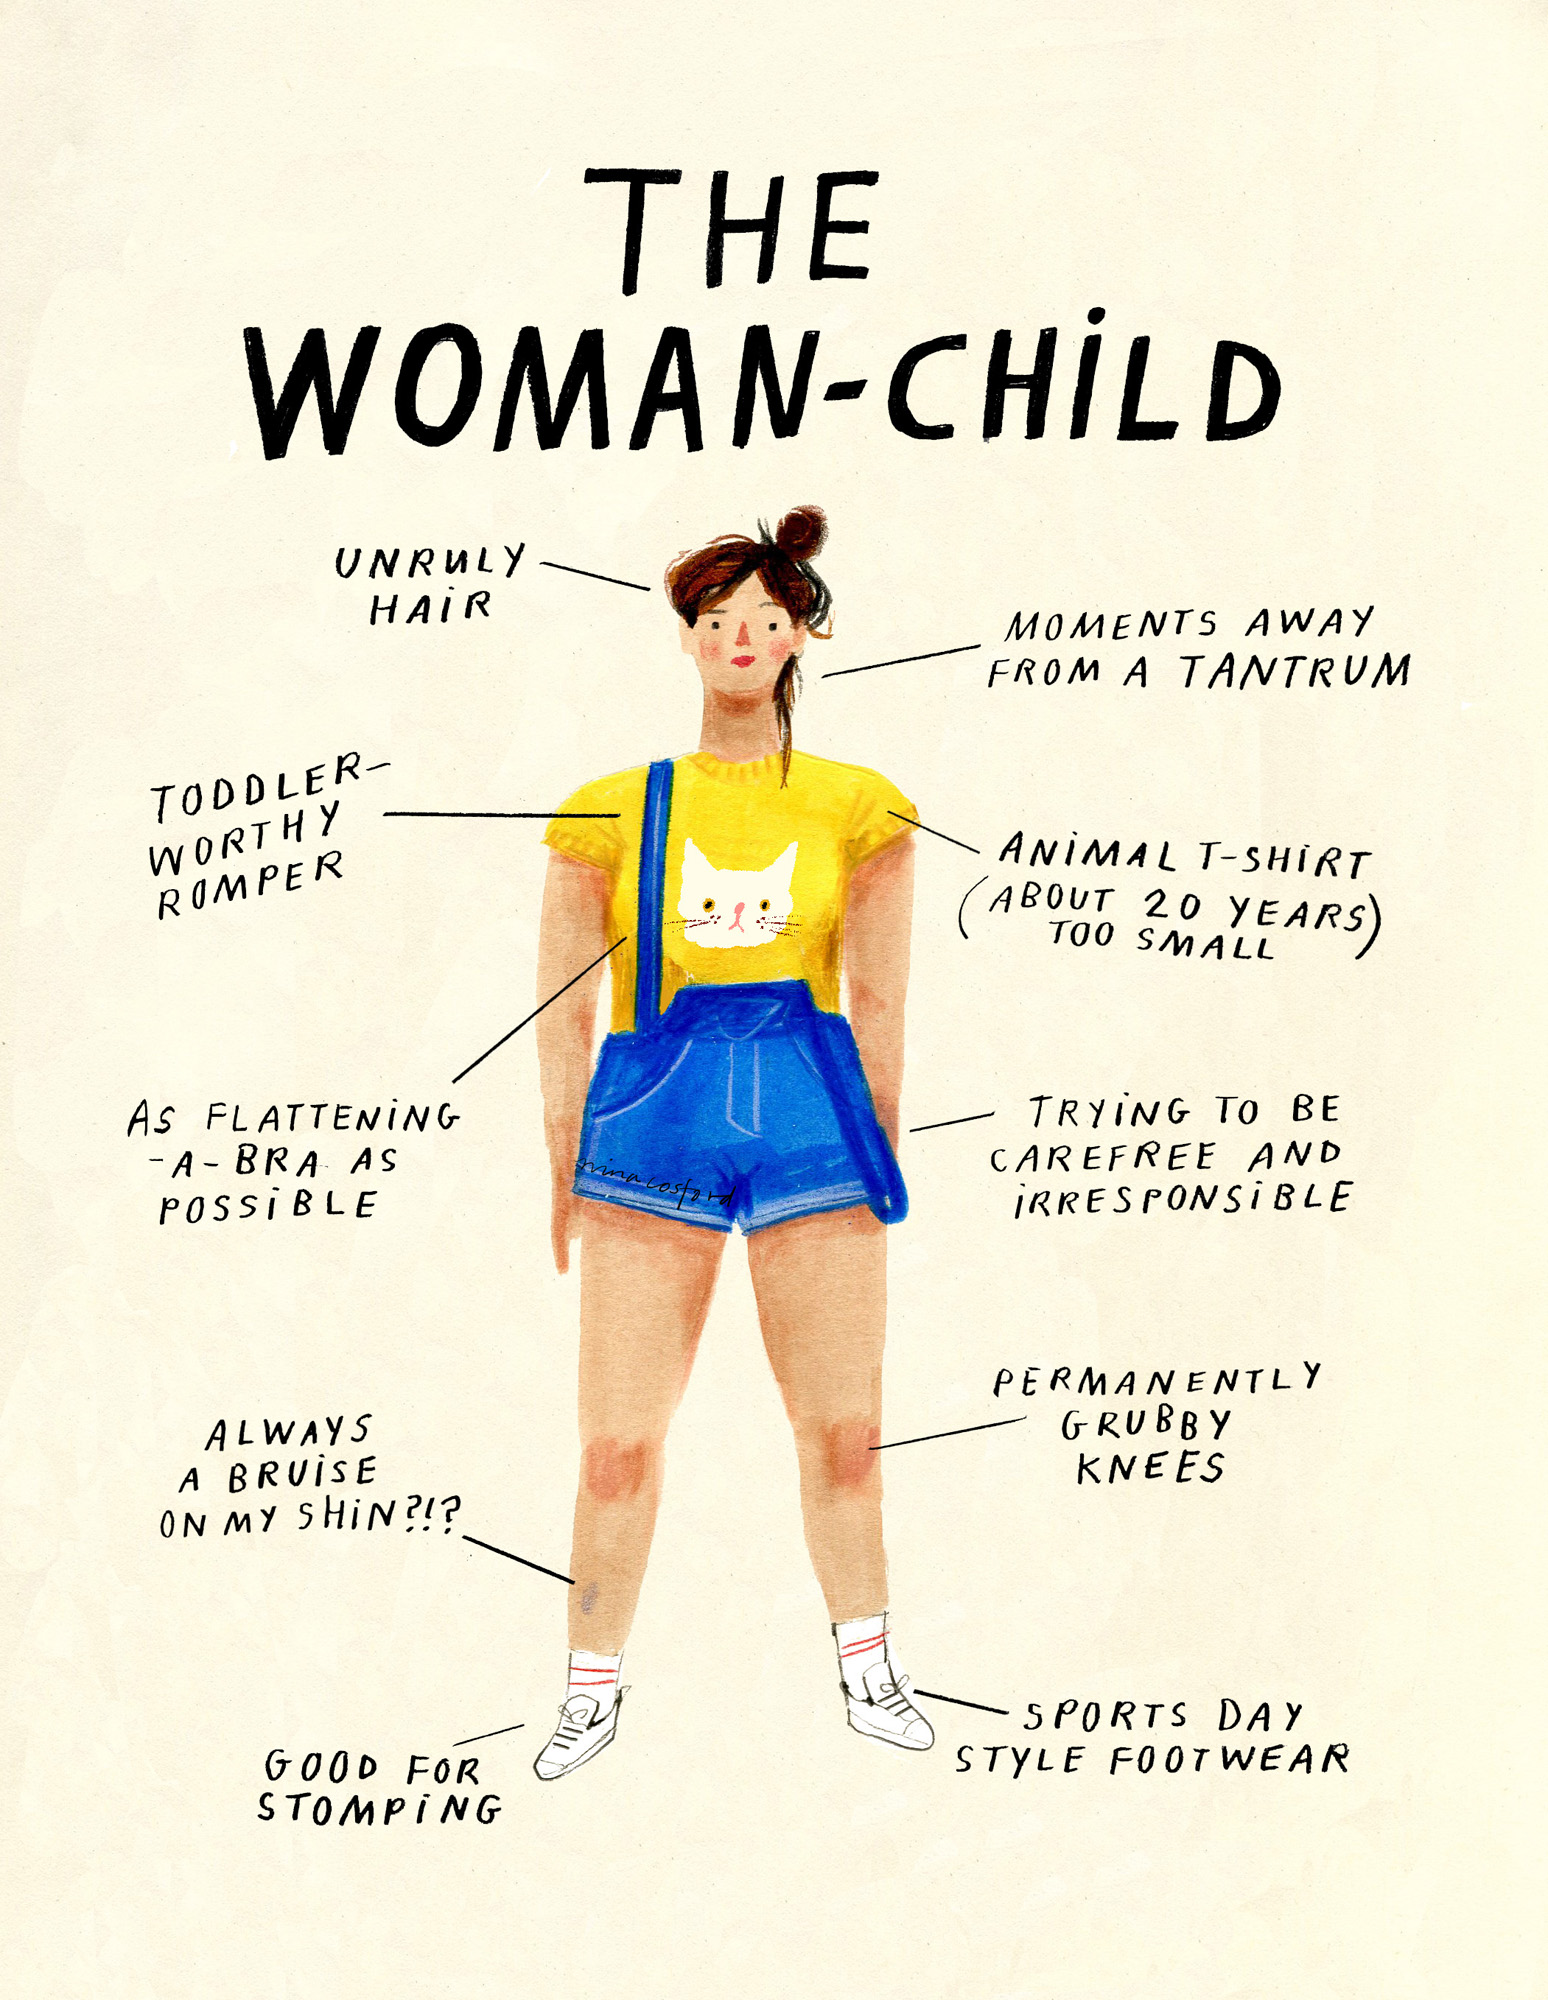 THE WOMAN-CHILD